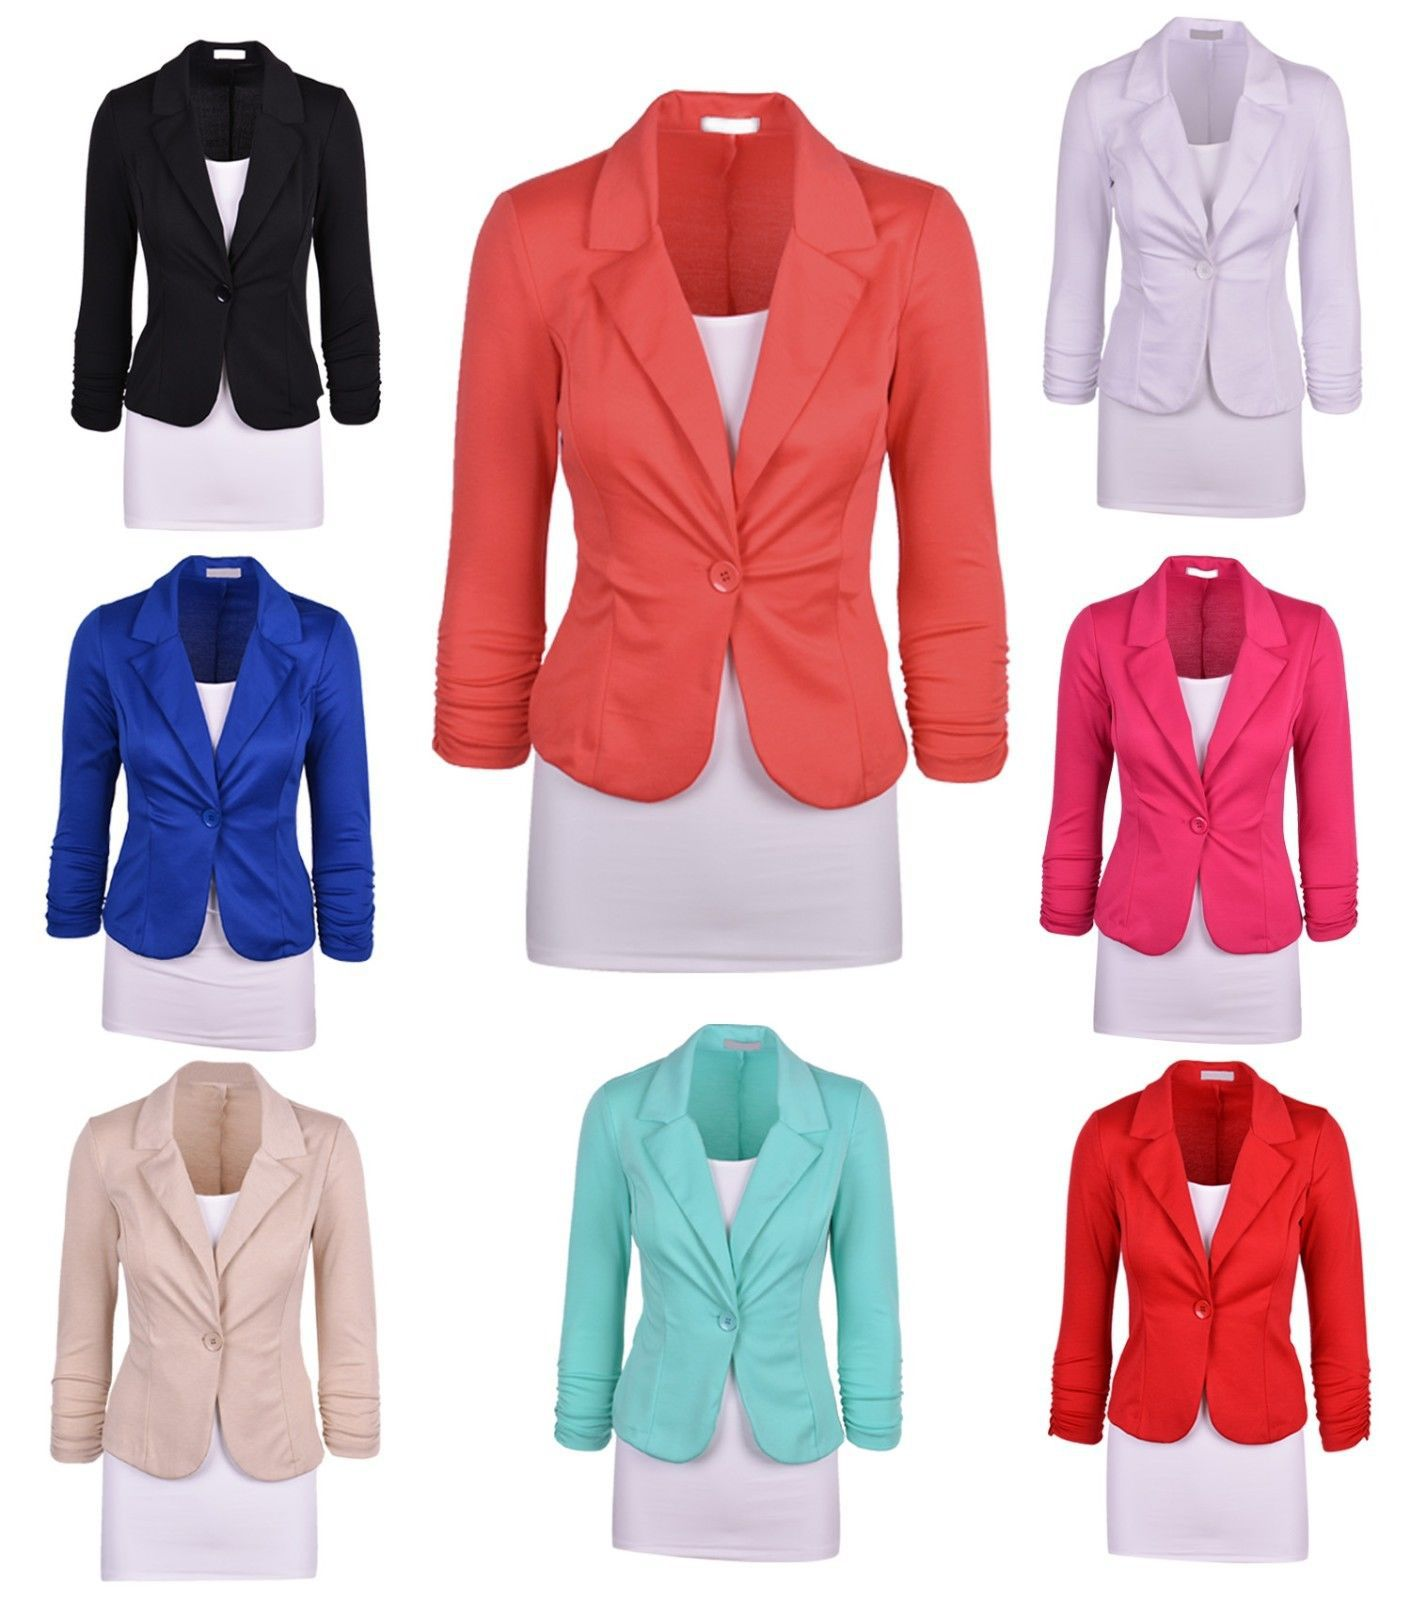 huge discount 464c6 375e7 Details about Women s Female Formal or Casual Blazers Jacket Coat Outwear  Plus Size